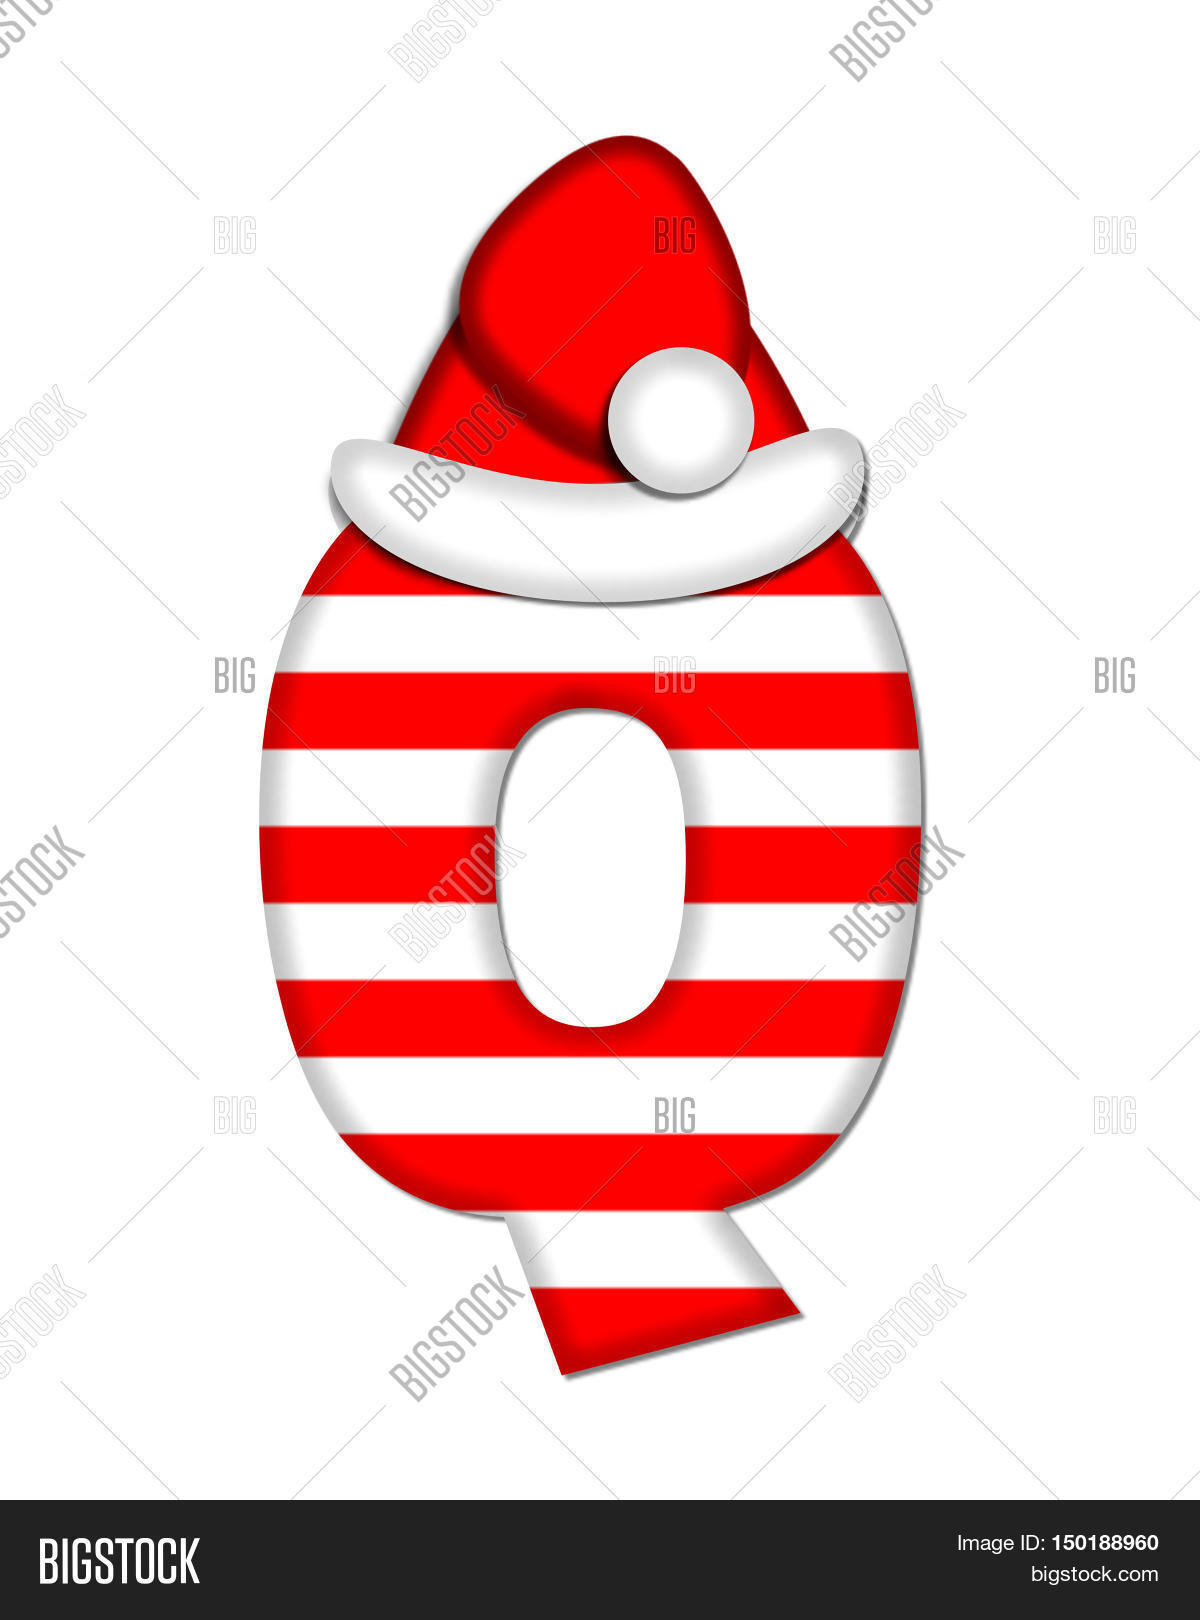 Q,alphabet,letter,graphic,illustration,education,striped,candy,cane,peppermint,cap,hat,santa,Clas,season,sweet,food,treats,sugar,holiday,festive,Christmas,desert,red,3D,2D,set,symbol,sign,decorated,decorative,school,learning,scrapbooking,scrap,booking,large,big,educational,spelling,style,text,white